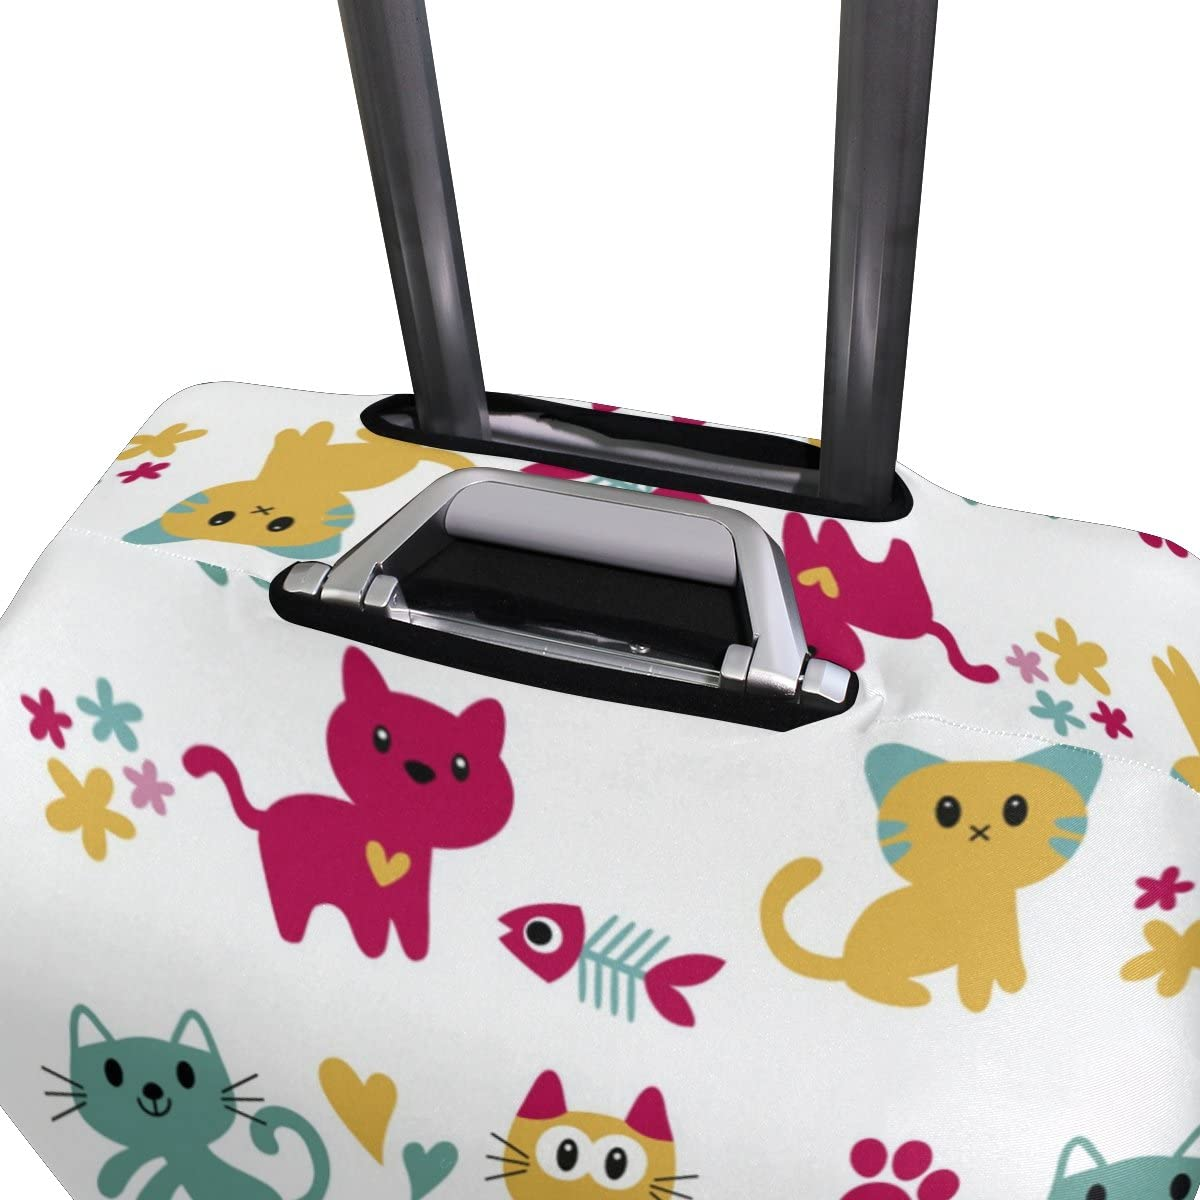 OREZI Luggage Protector Pattern With Cute Cats Travel Luggage Elastic Cover Suitcase Washable and Durable Anti-Scratch Stretchy Case Cover Fits 18-32 Inches